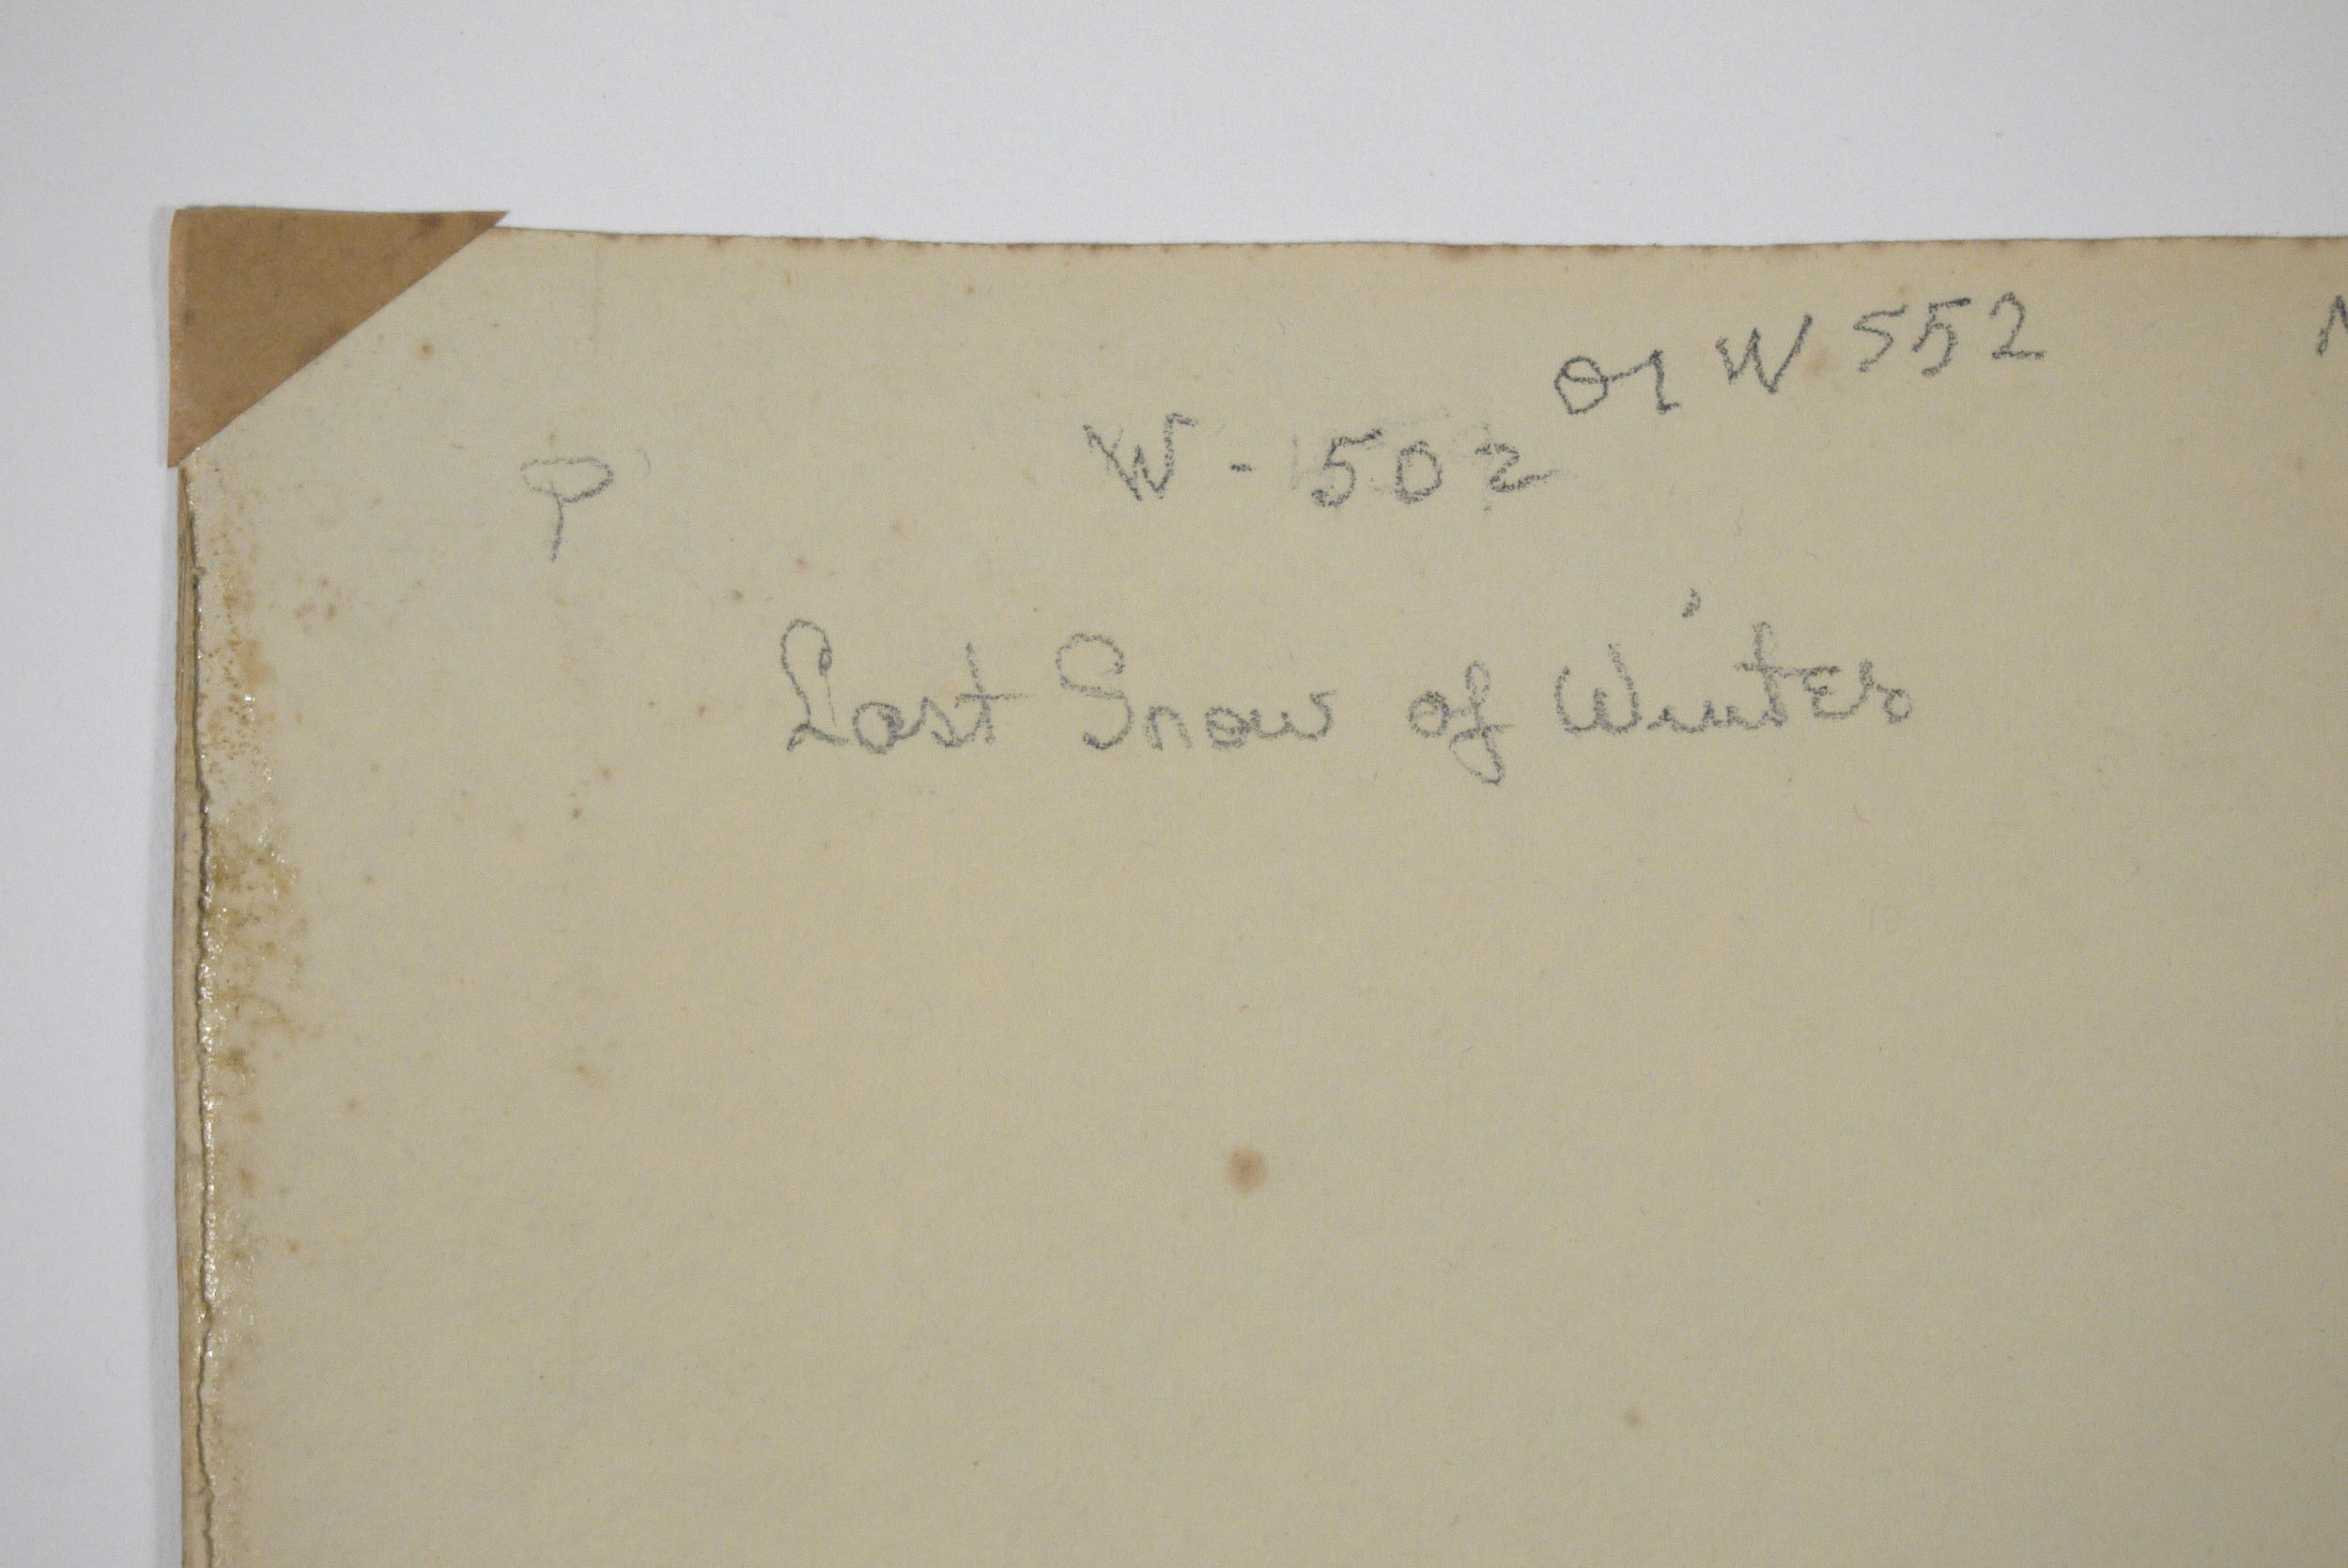 Verso of  Last Snow of Winter , showing tape and adhesive residue, before conservation treatment.